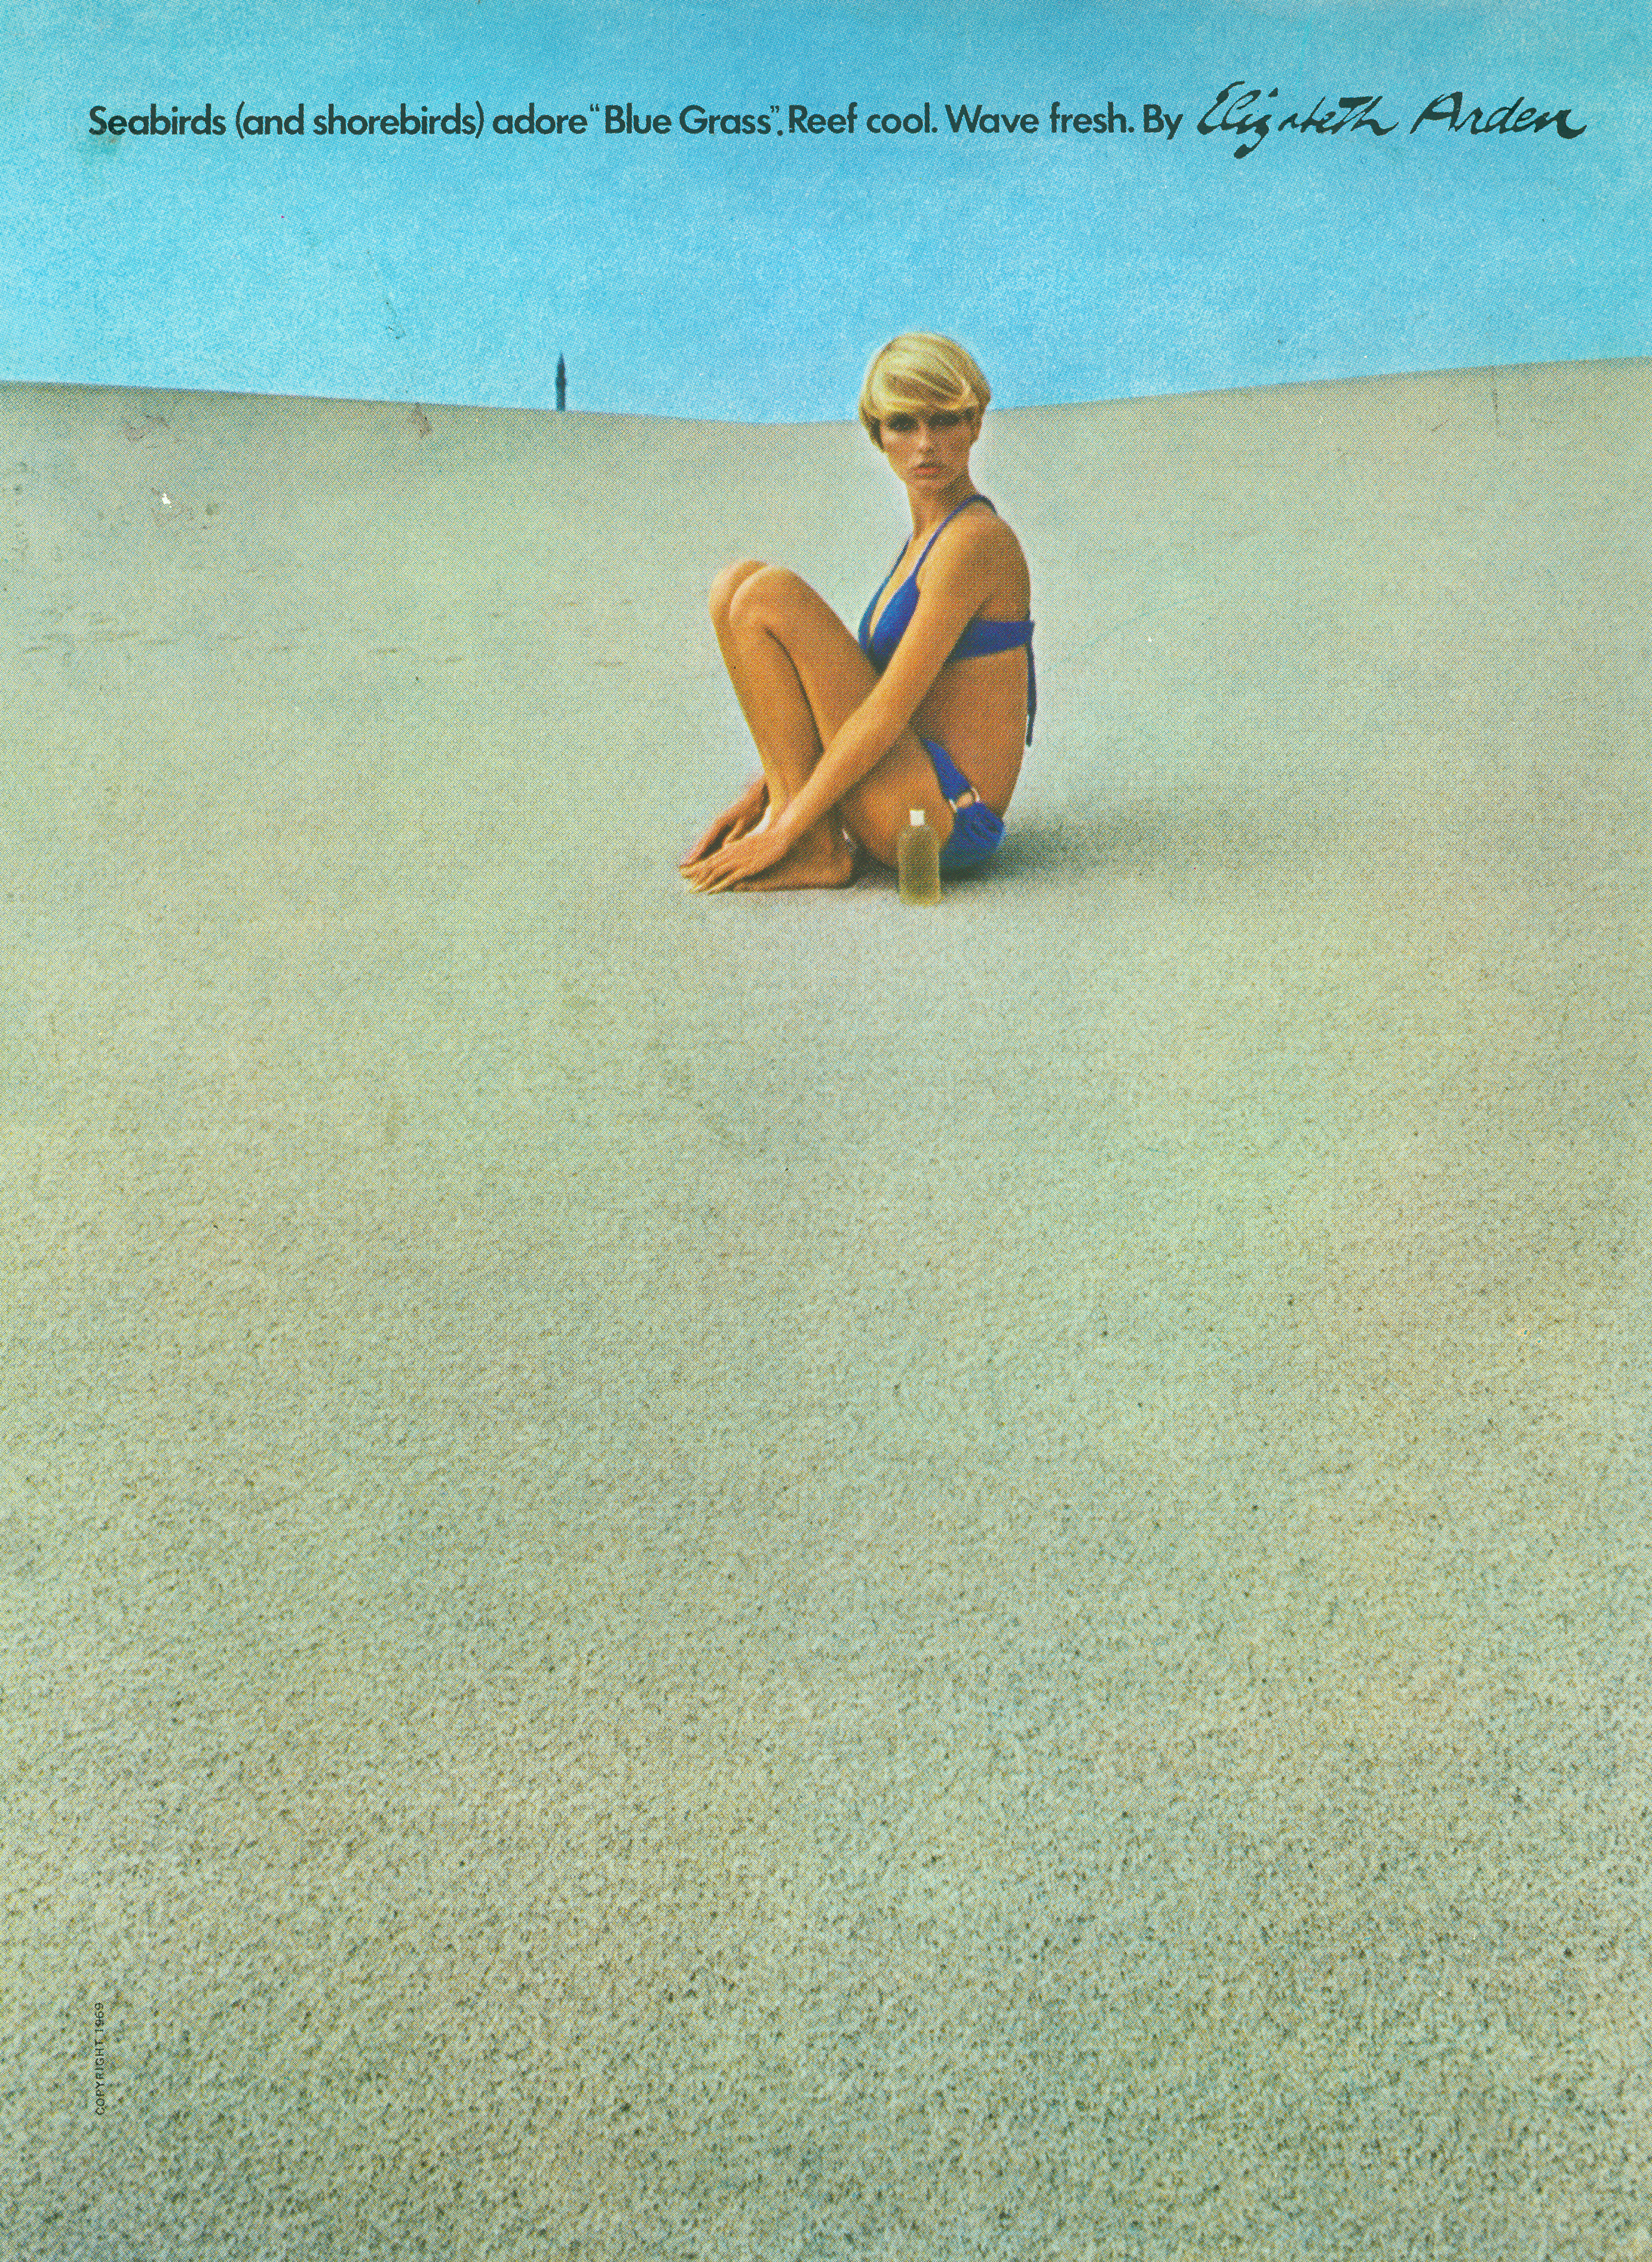 Color photo of a woman in a bikini sitting on a sand dune and looking at the viewer.